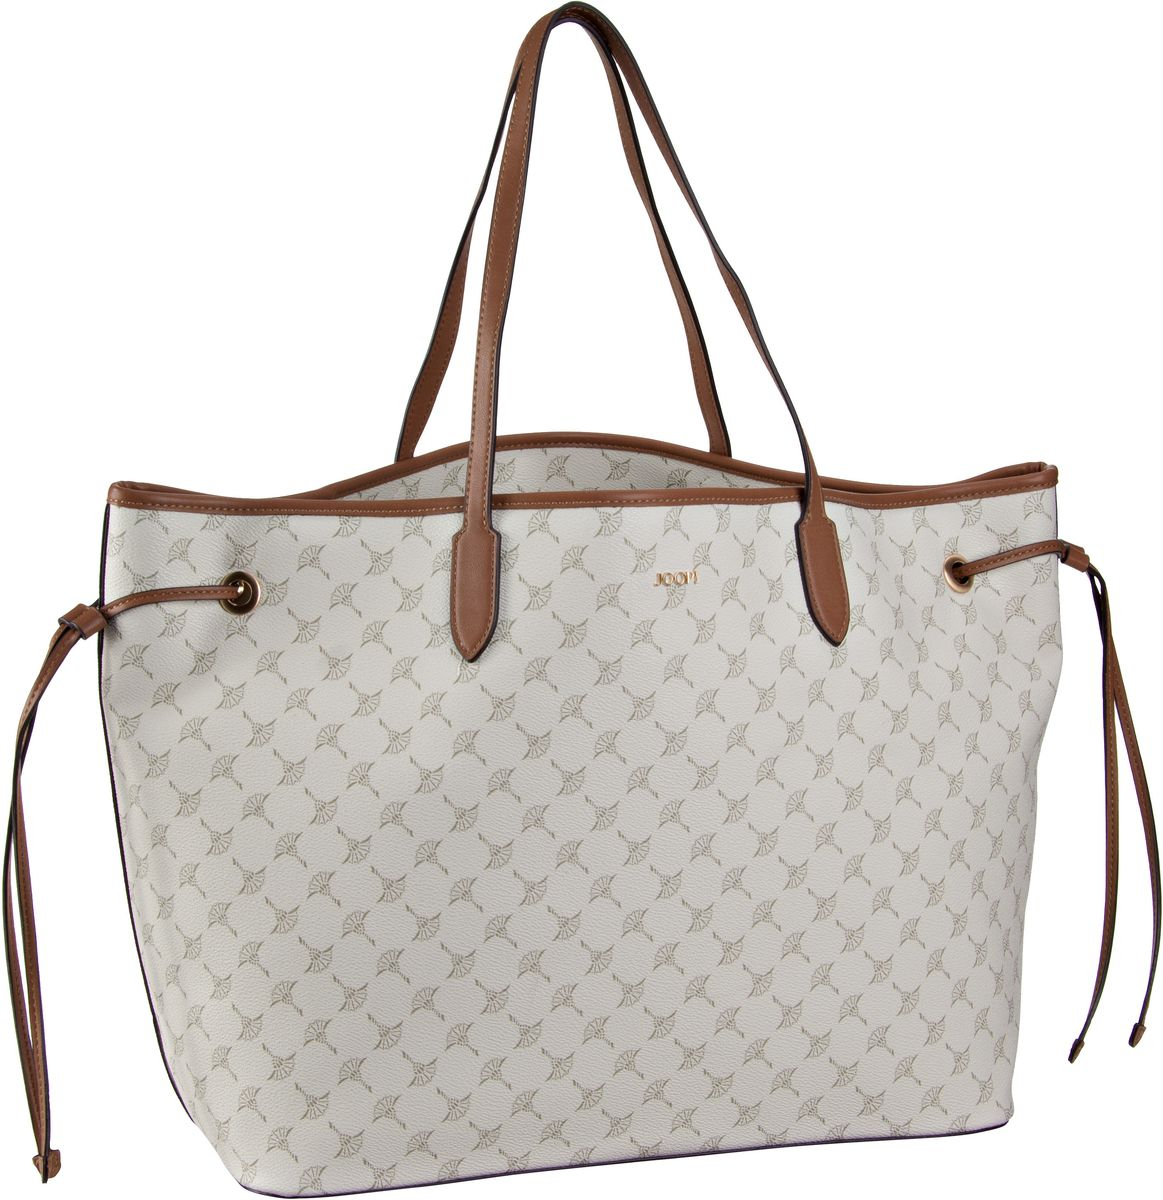 Handtasche Lara Cortina Shopper Large Offwhite